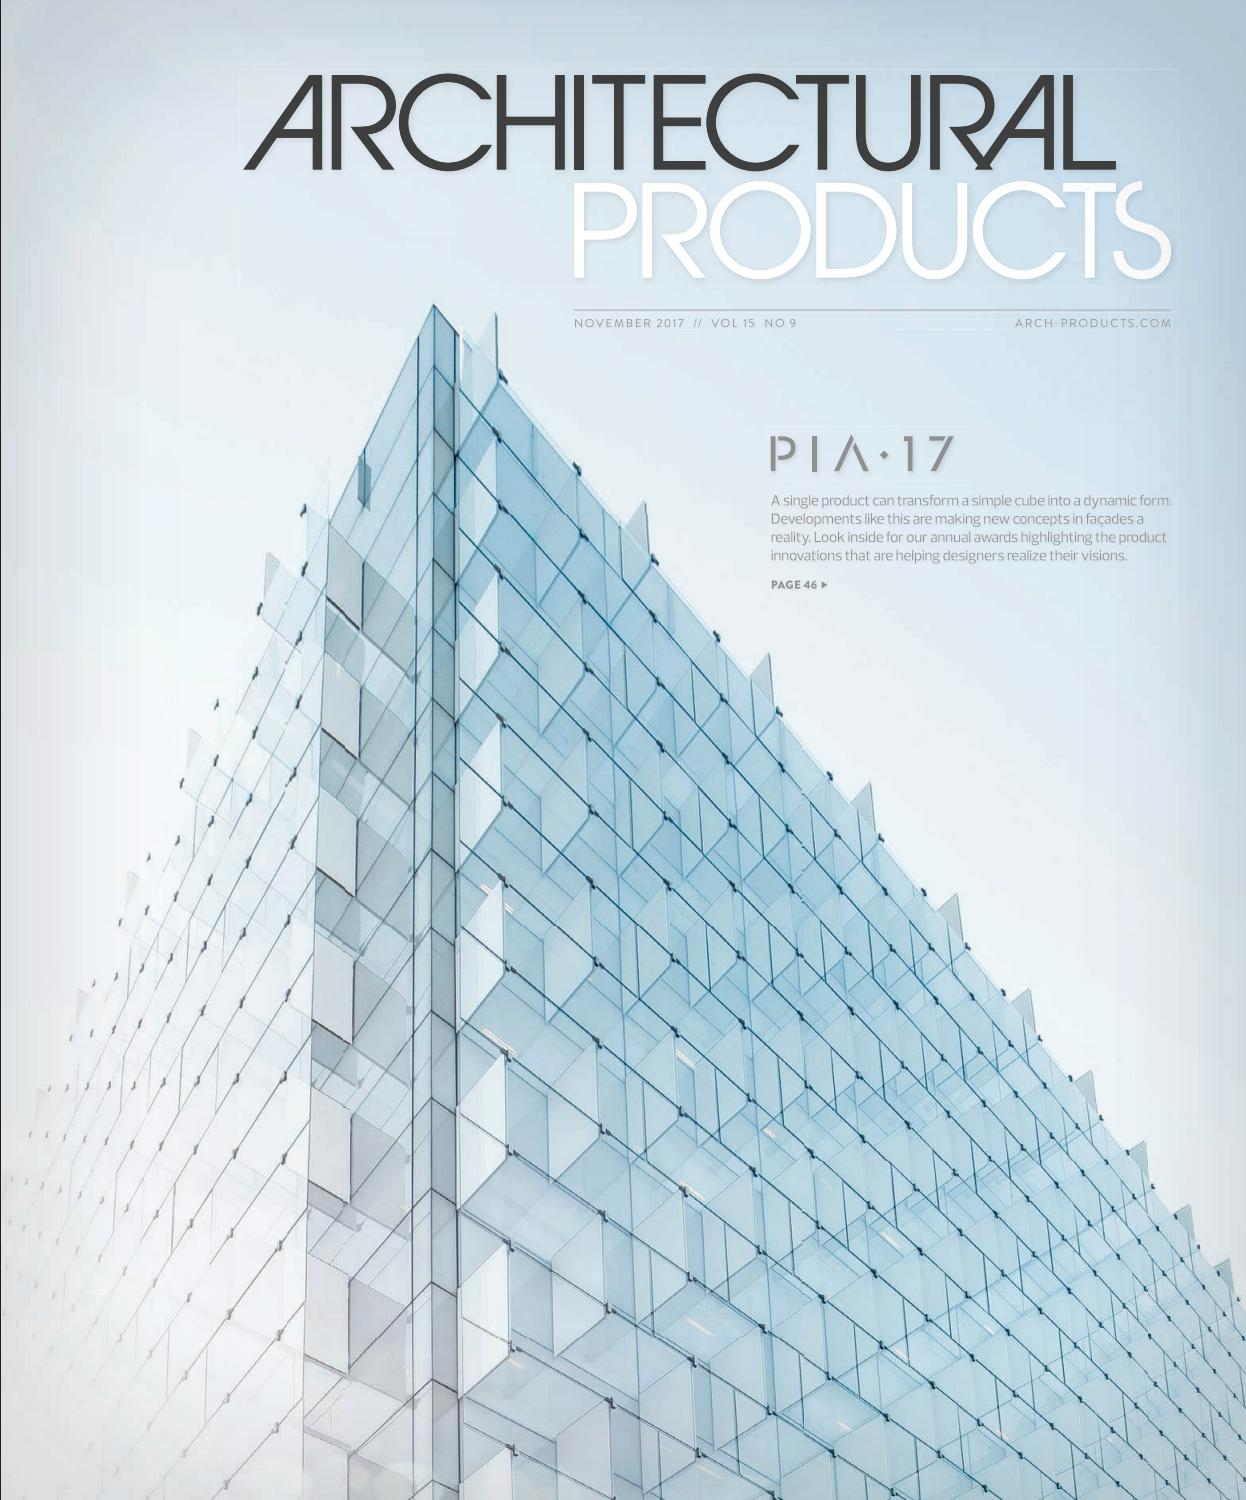 Architectural products november 2017 by construction business architectural products november 2017 by construction business media issuu fandeluxe Images